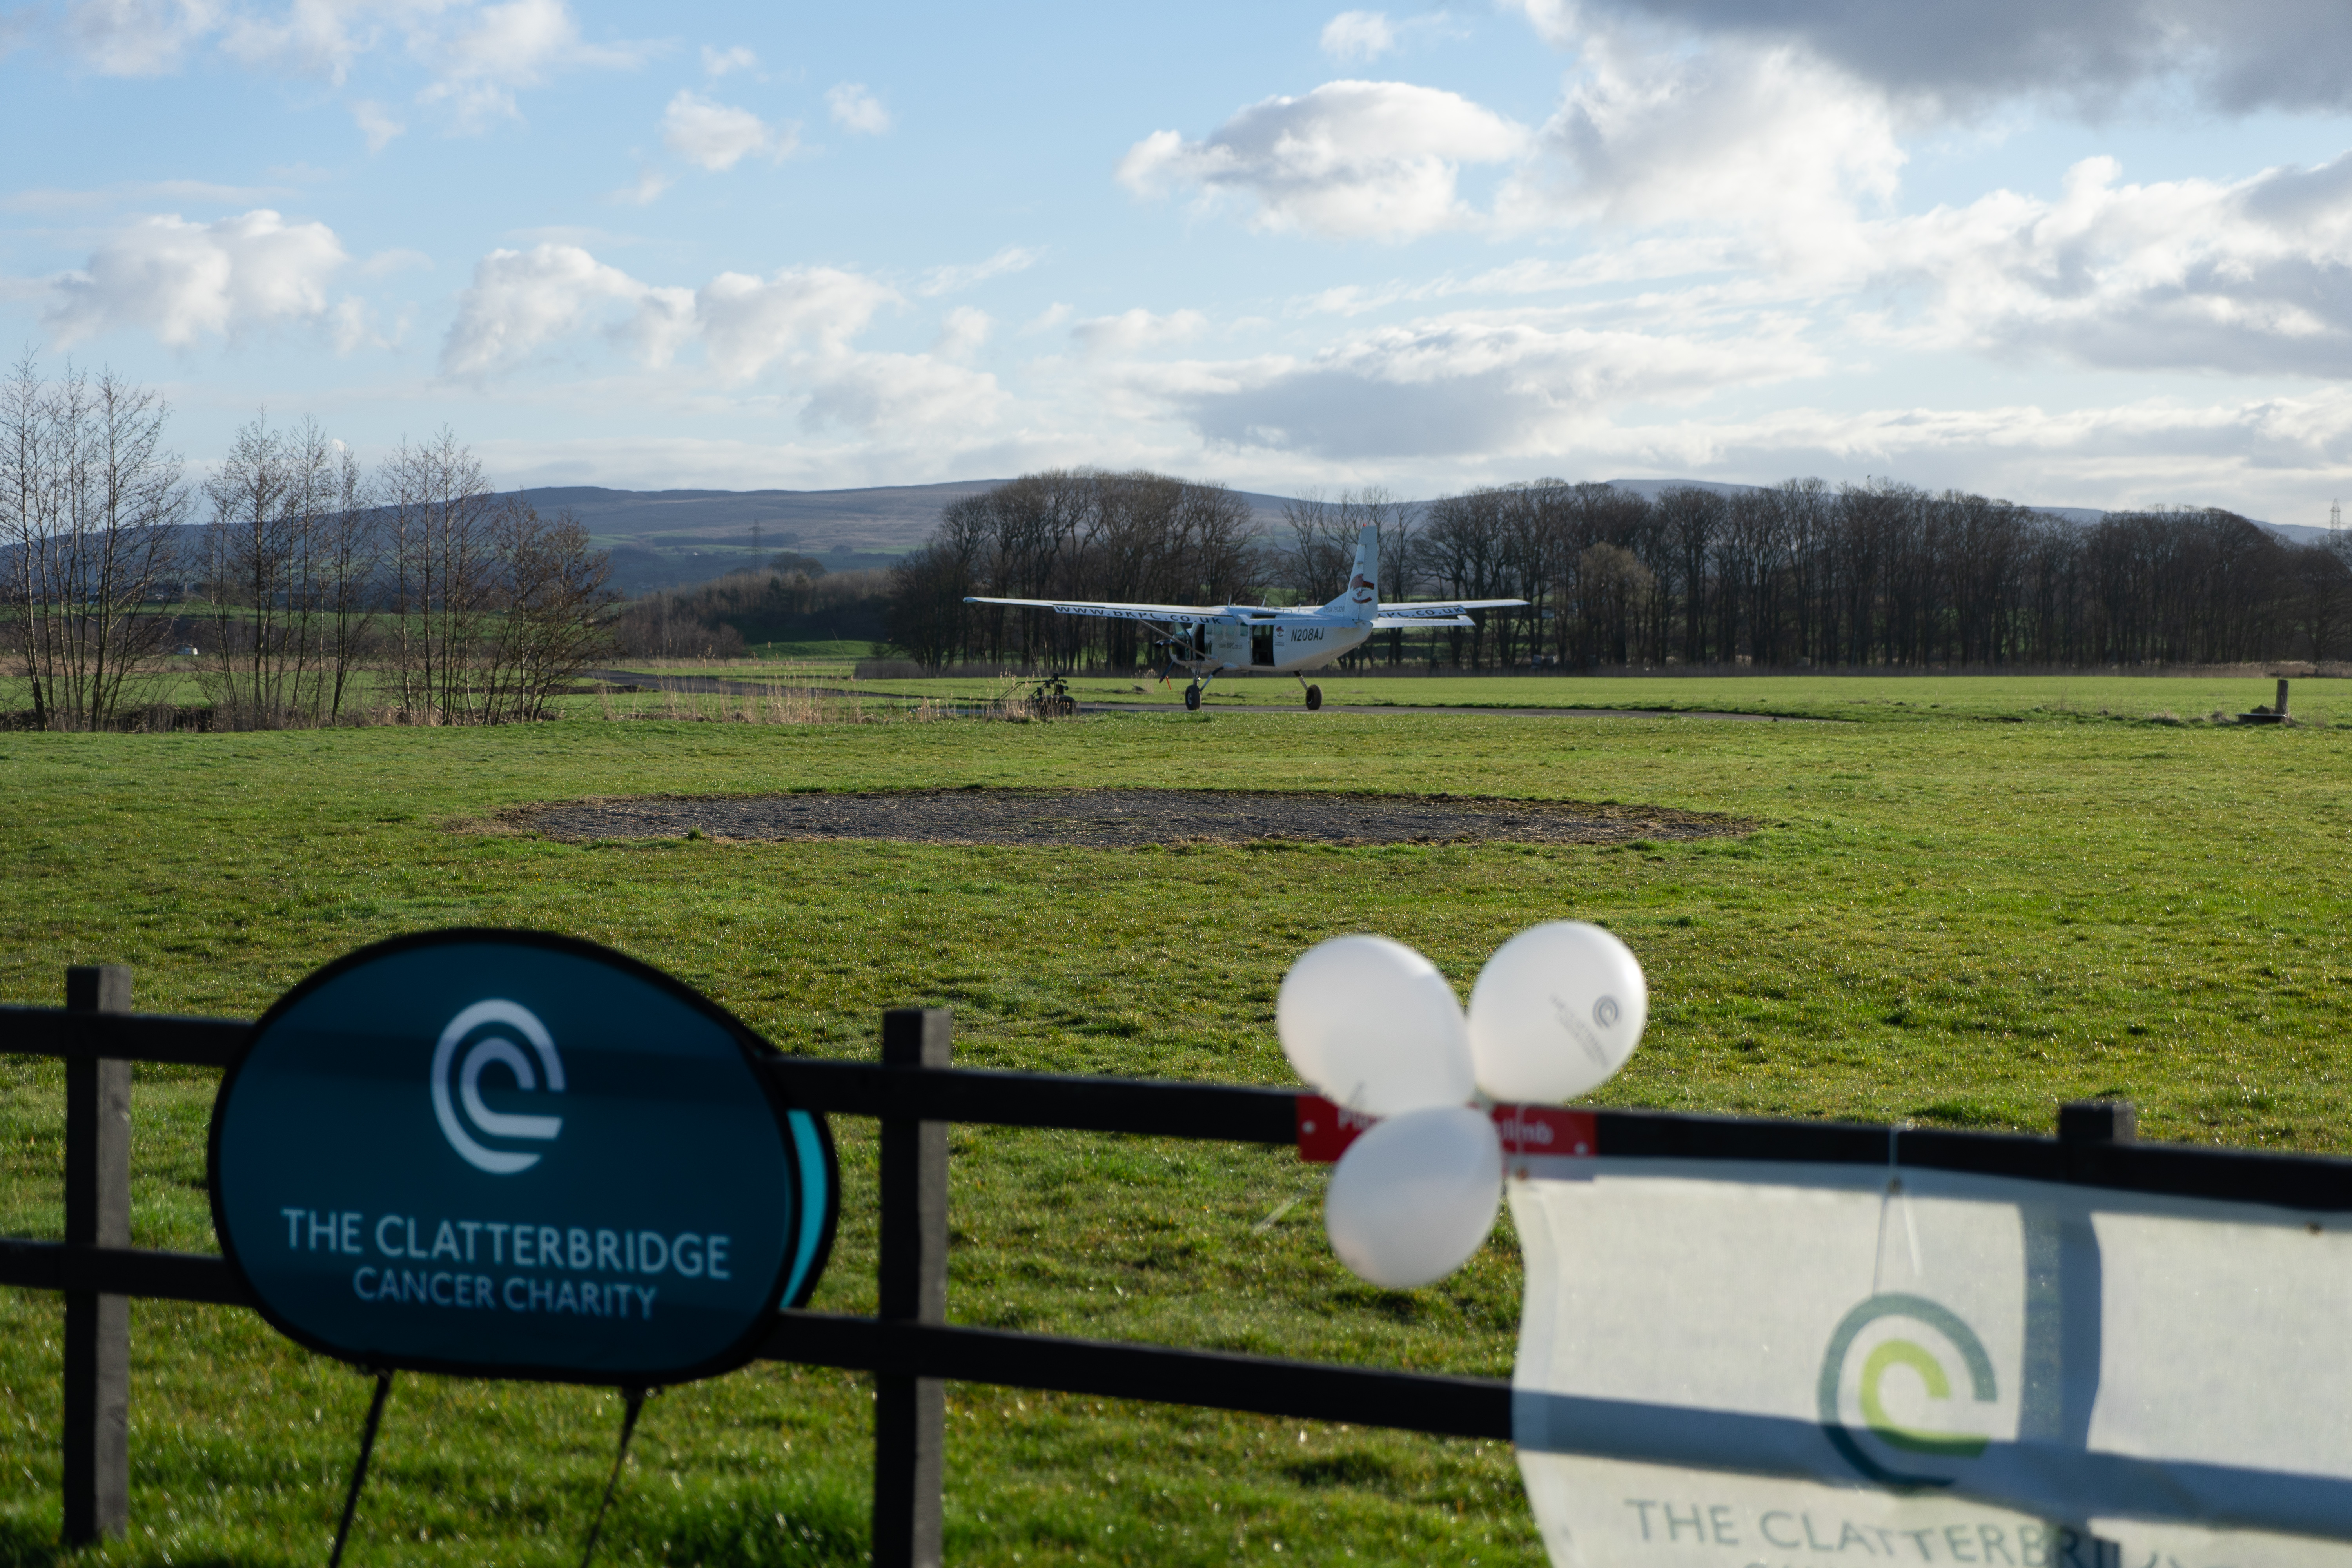 Skydive for Clatterbridge - Sunday 24 March 2019